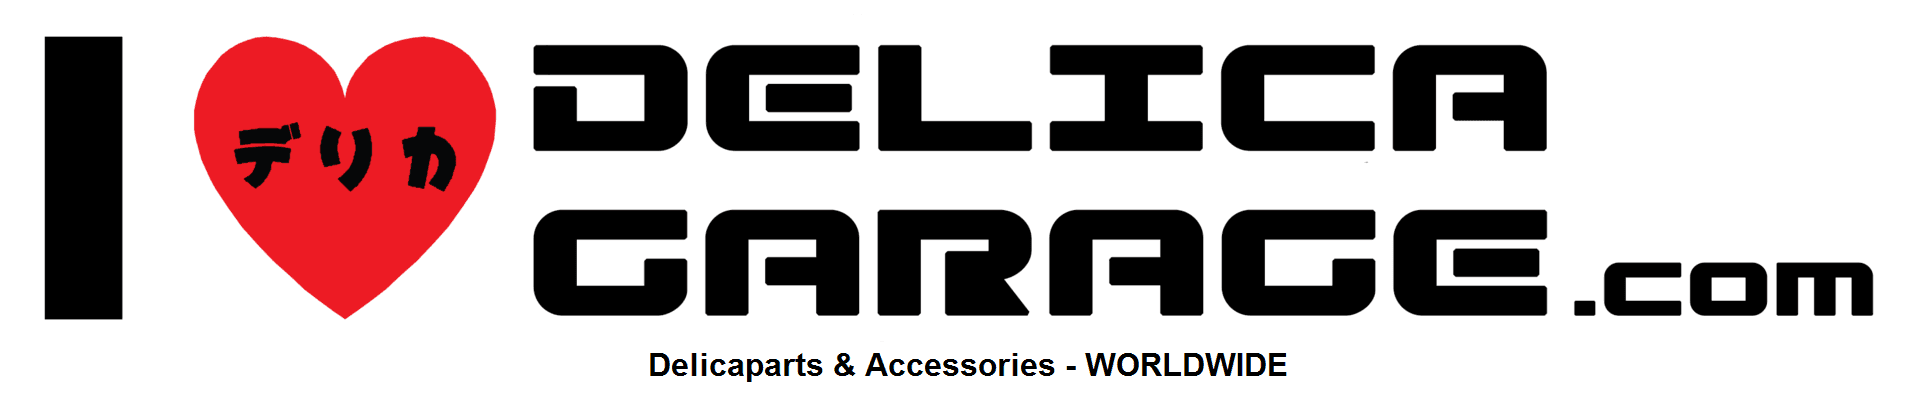 i love delica garage dot com logo